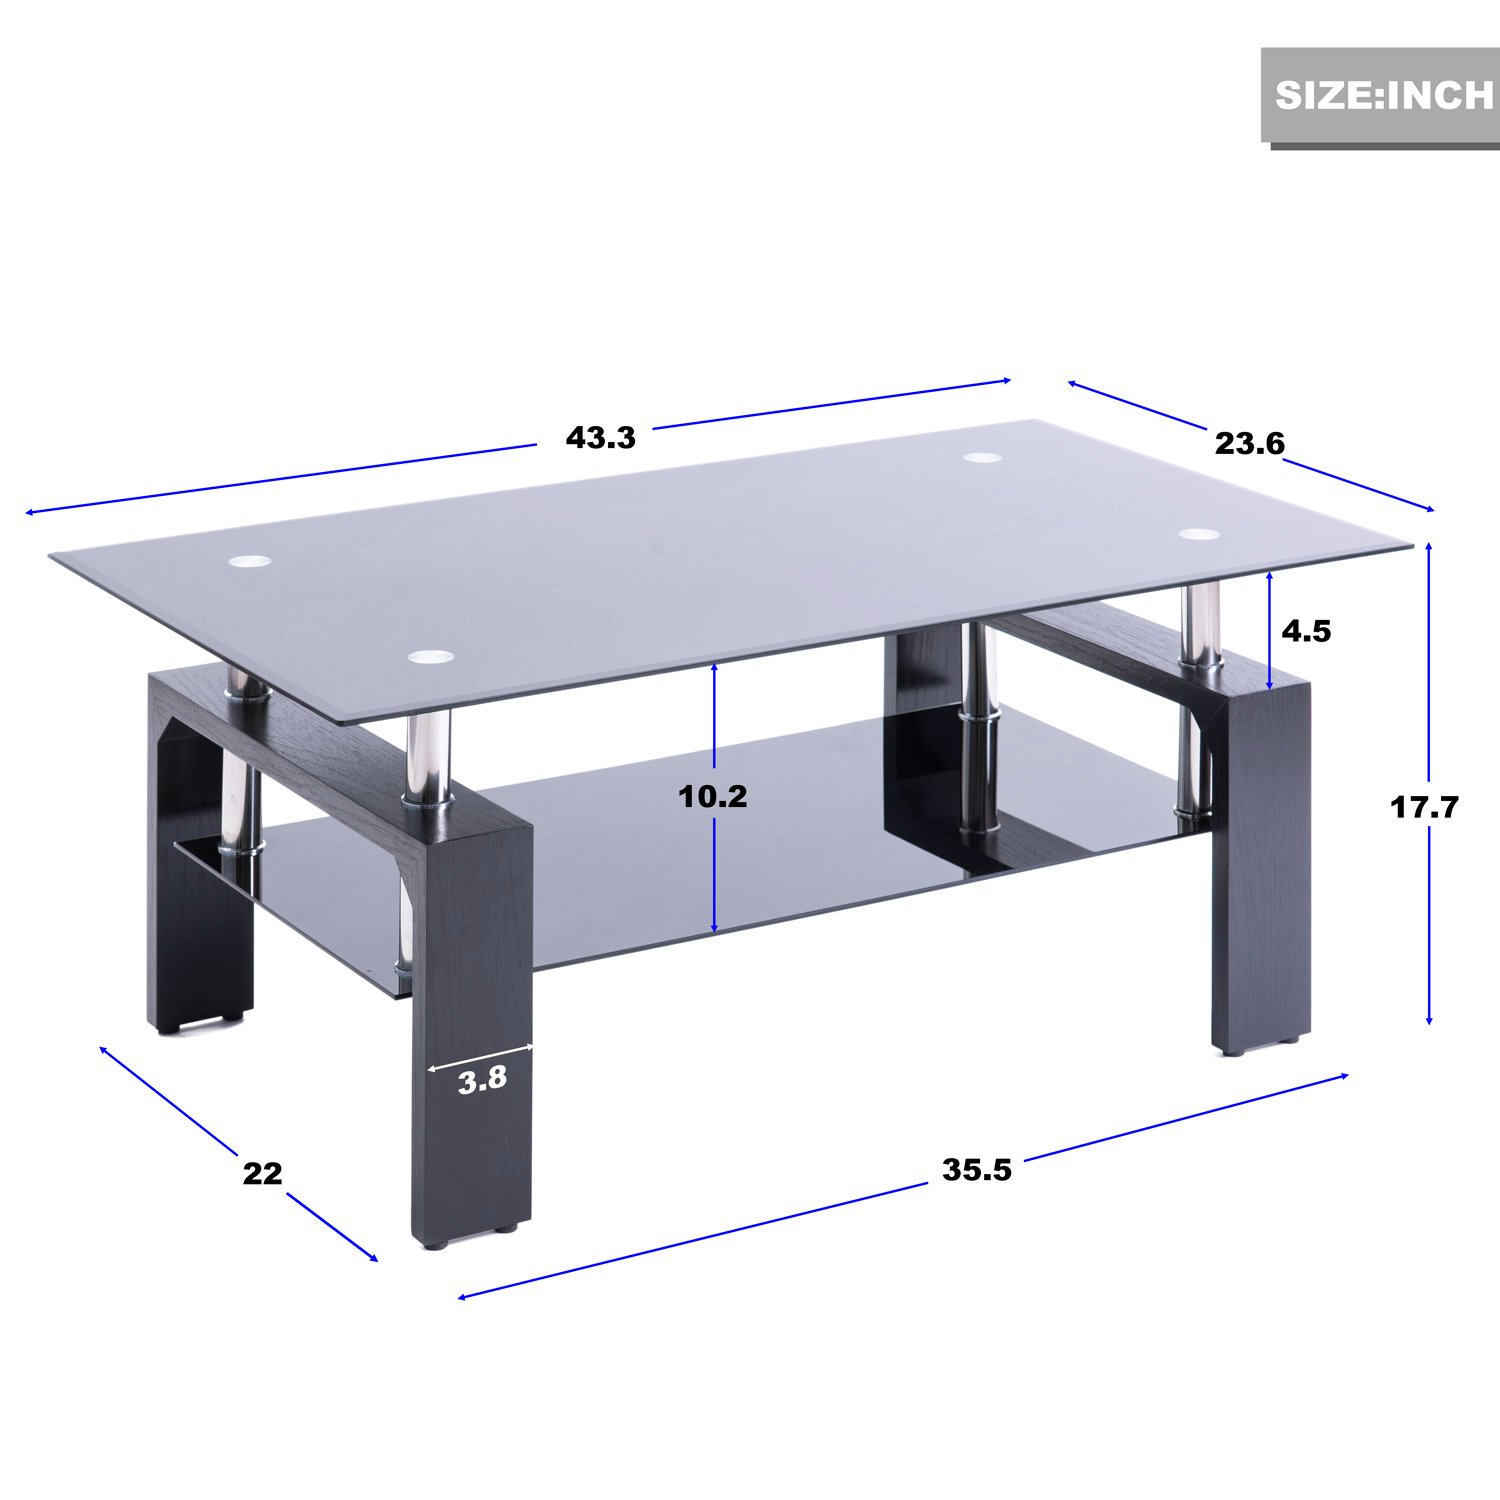 ae460c7cf0f Amazon.com  Merax Distinctive Design Coffee Tea Table with 2-Tiers Glass  Top and Black Wooden Legs  Kitchen   Dining